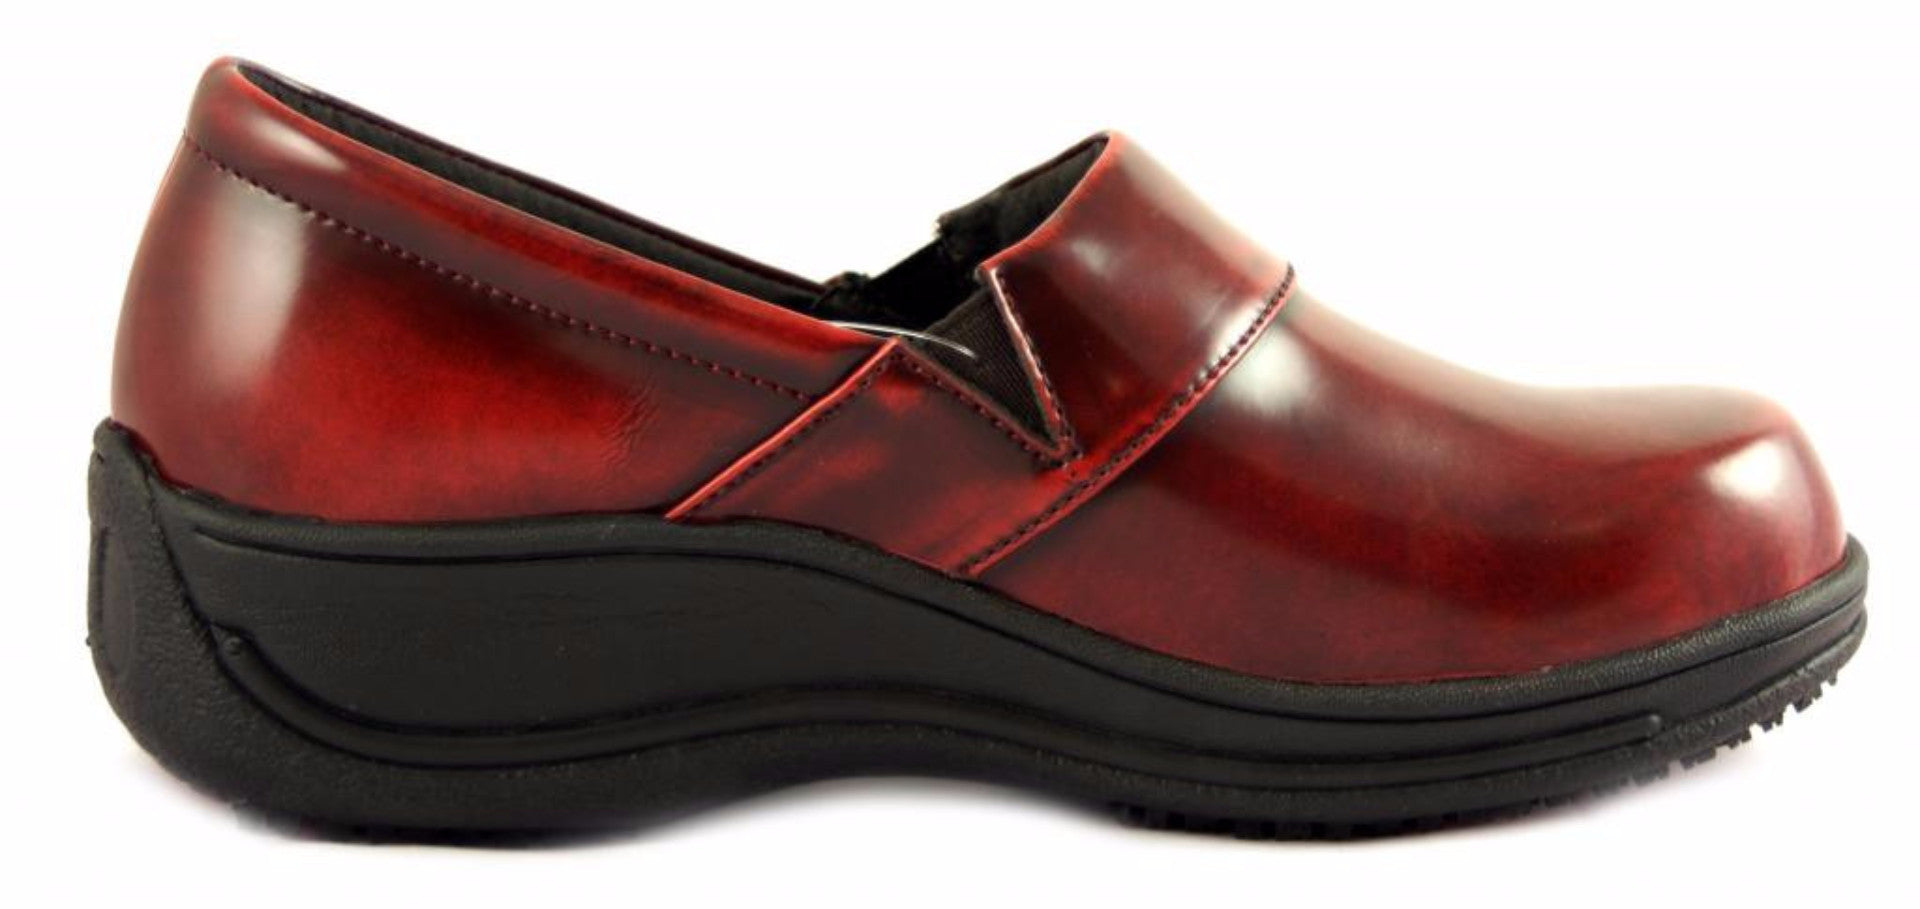 0c8113f53c1 SRS Judith Women's Slip Resistant Leather Color Clog Red